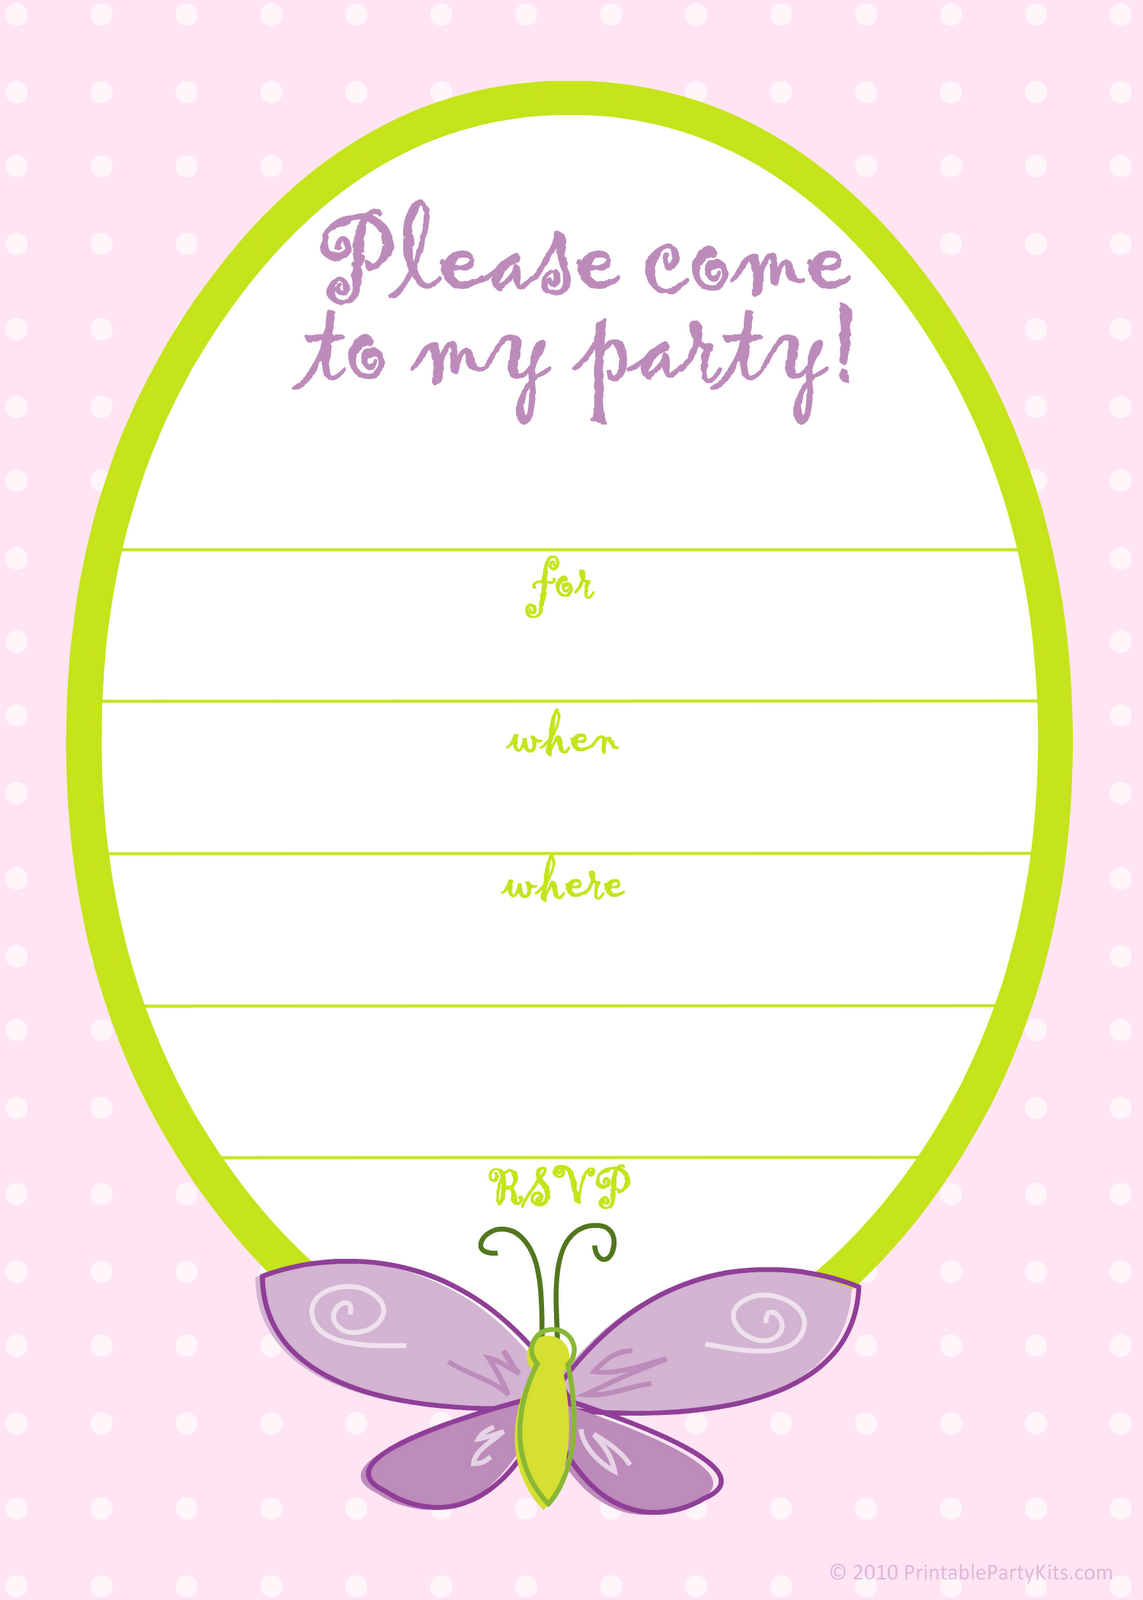 birthday invitations templates for girls free - Girl Birthday Party Invitations